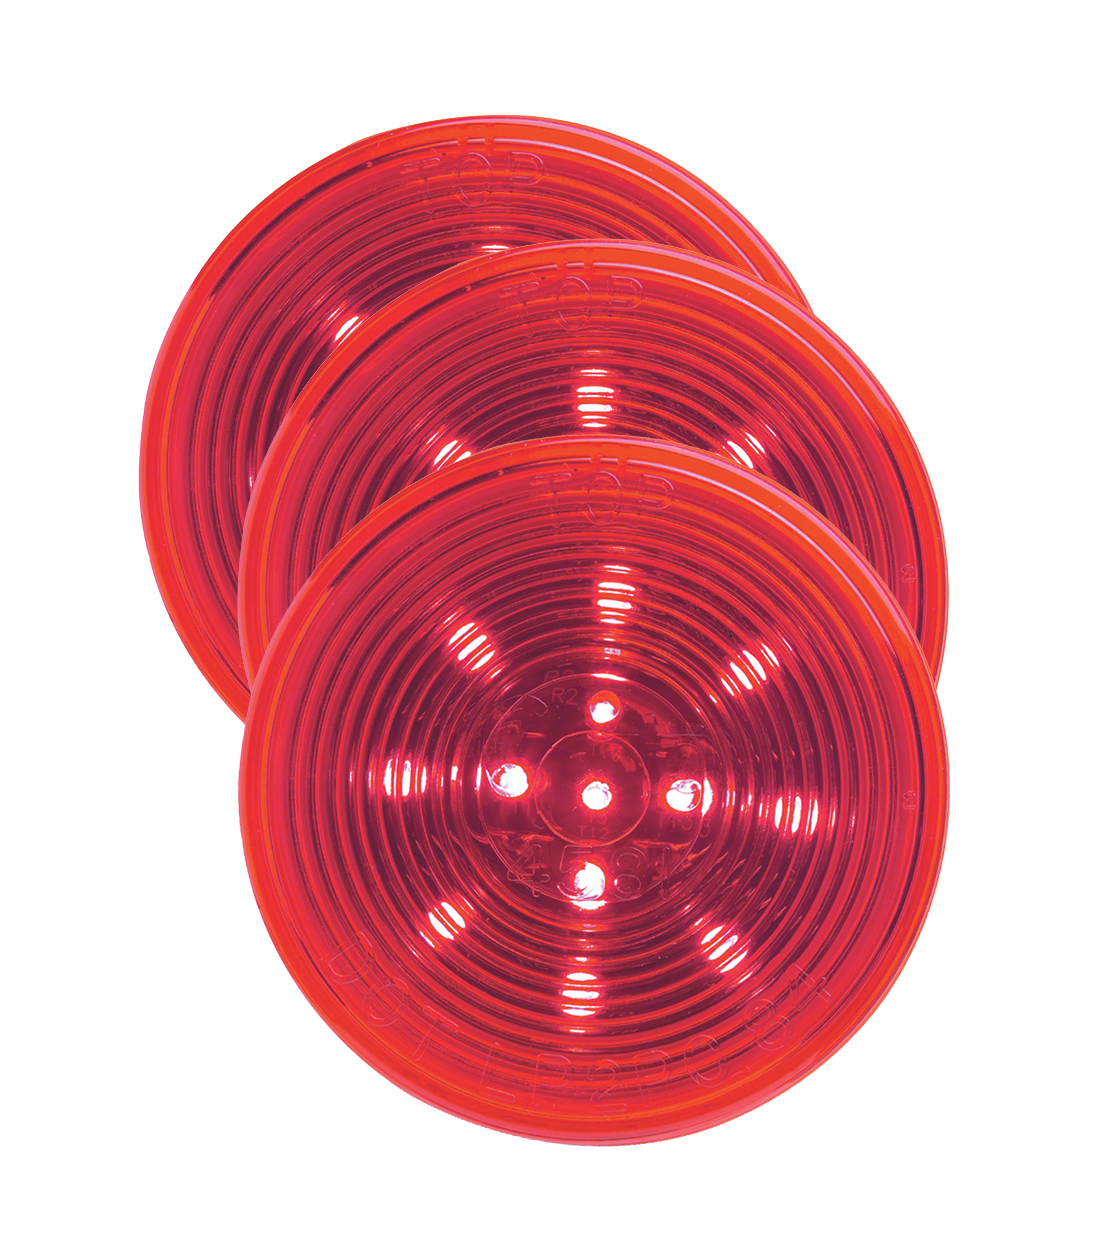 G1032-3 – Hi Count® 2 1/2″ LED Clearance Marker Light, Optic, Red, Bulk Pack